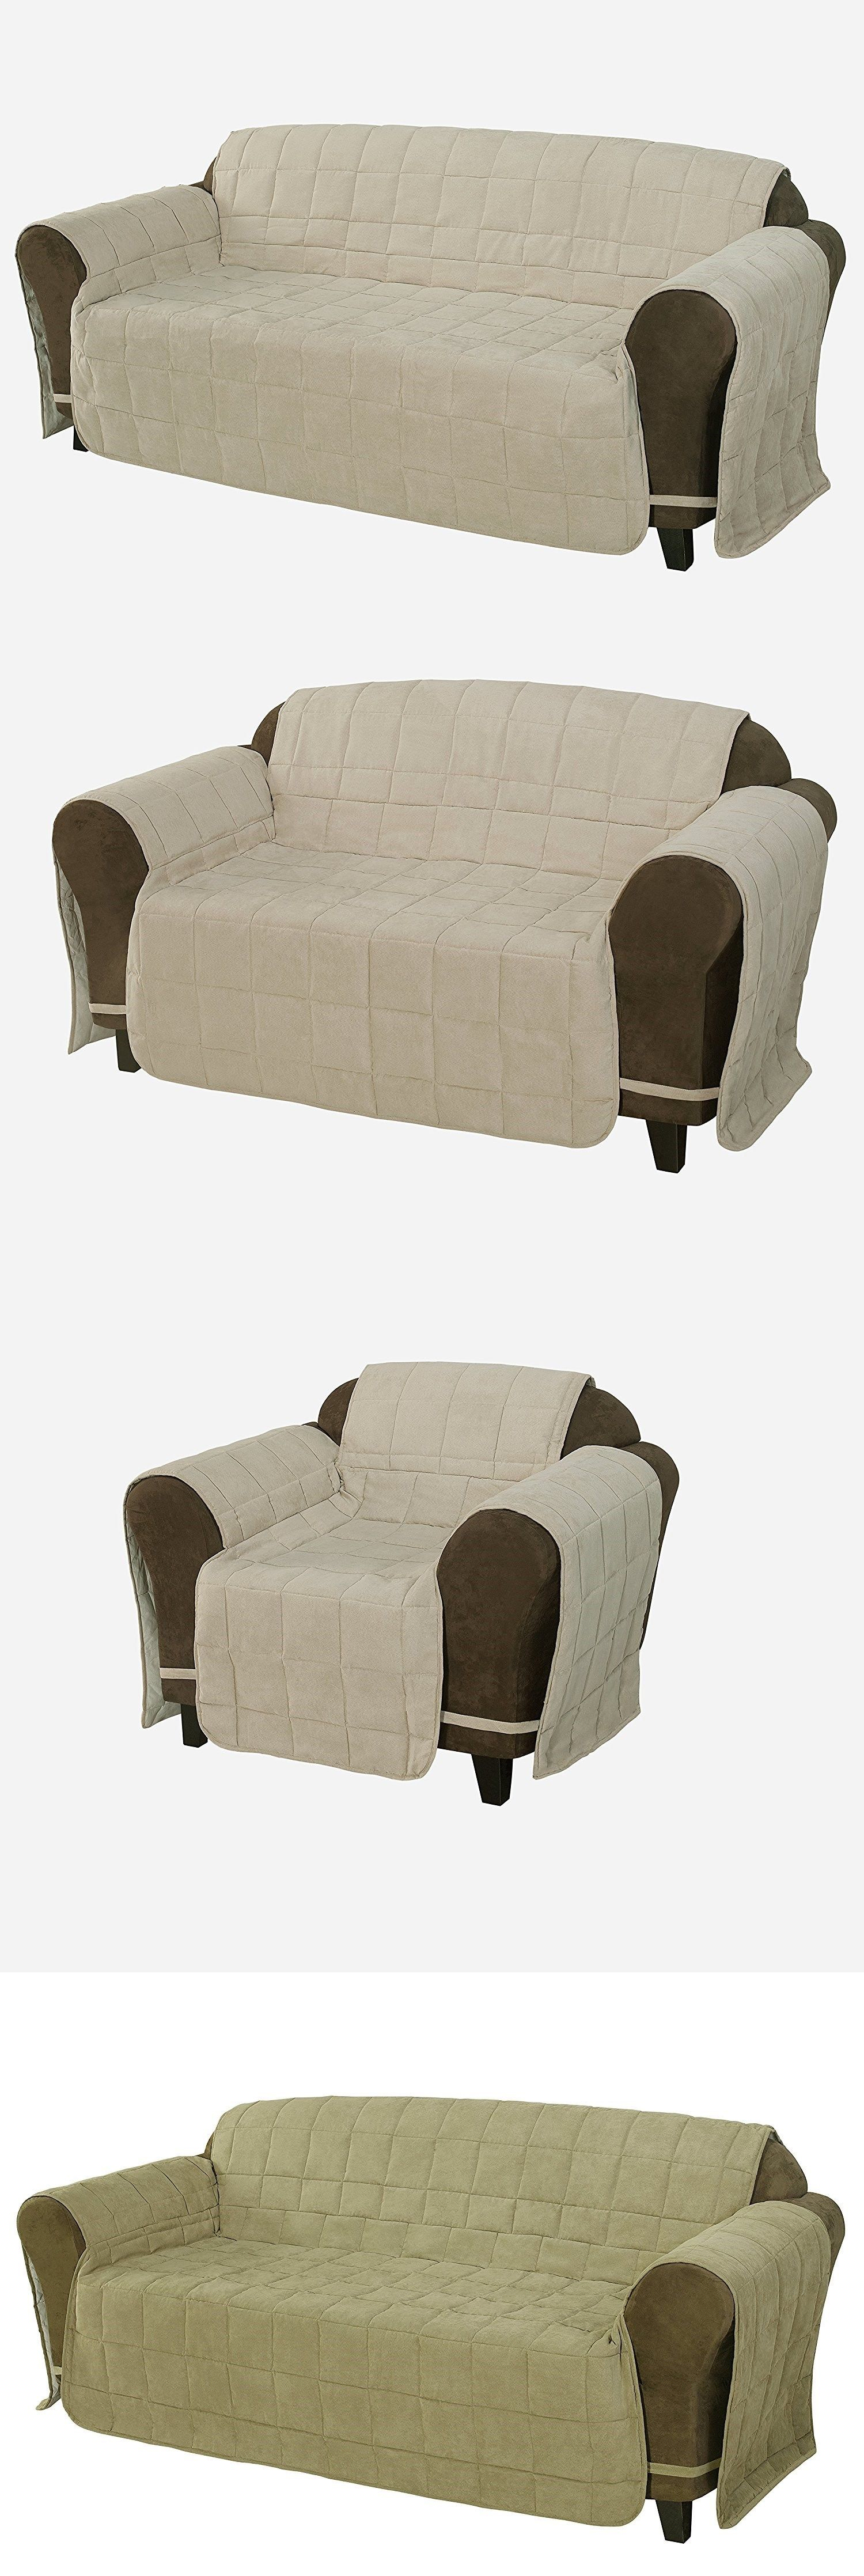 Slipcovers Quilted Micro Suede Pet Furniture Protector